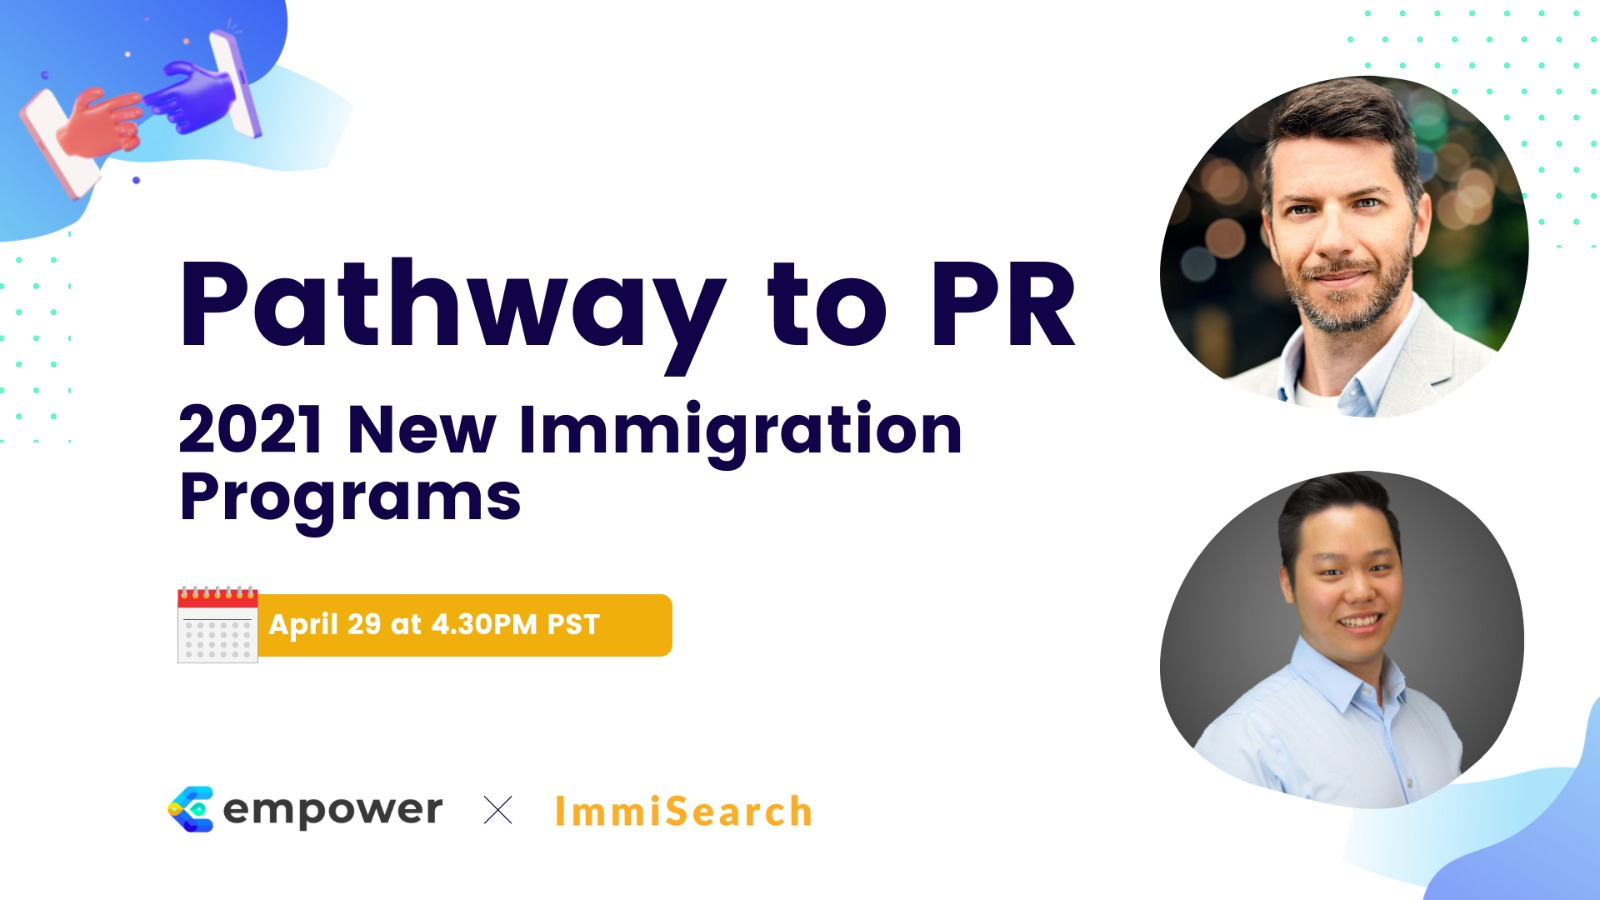 Pathway to PR 2021 New Immigration Programs cover with Kevin Lee CEO of ImmISearch and Rafael Marques who is a licensed immigration consultant